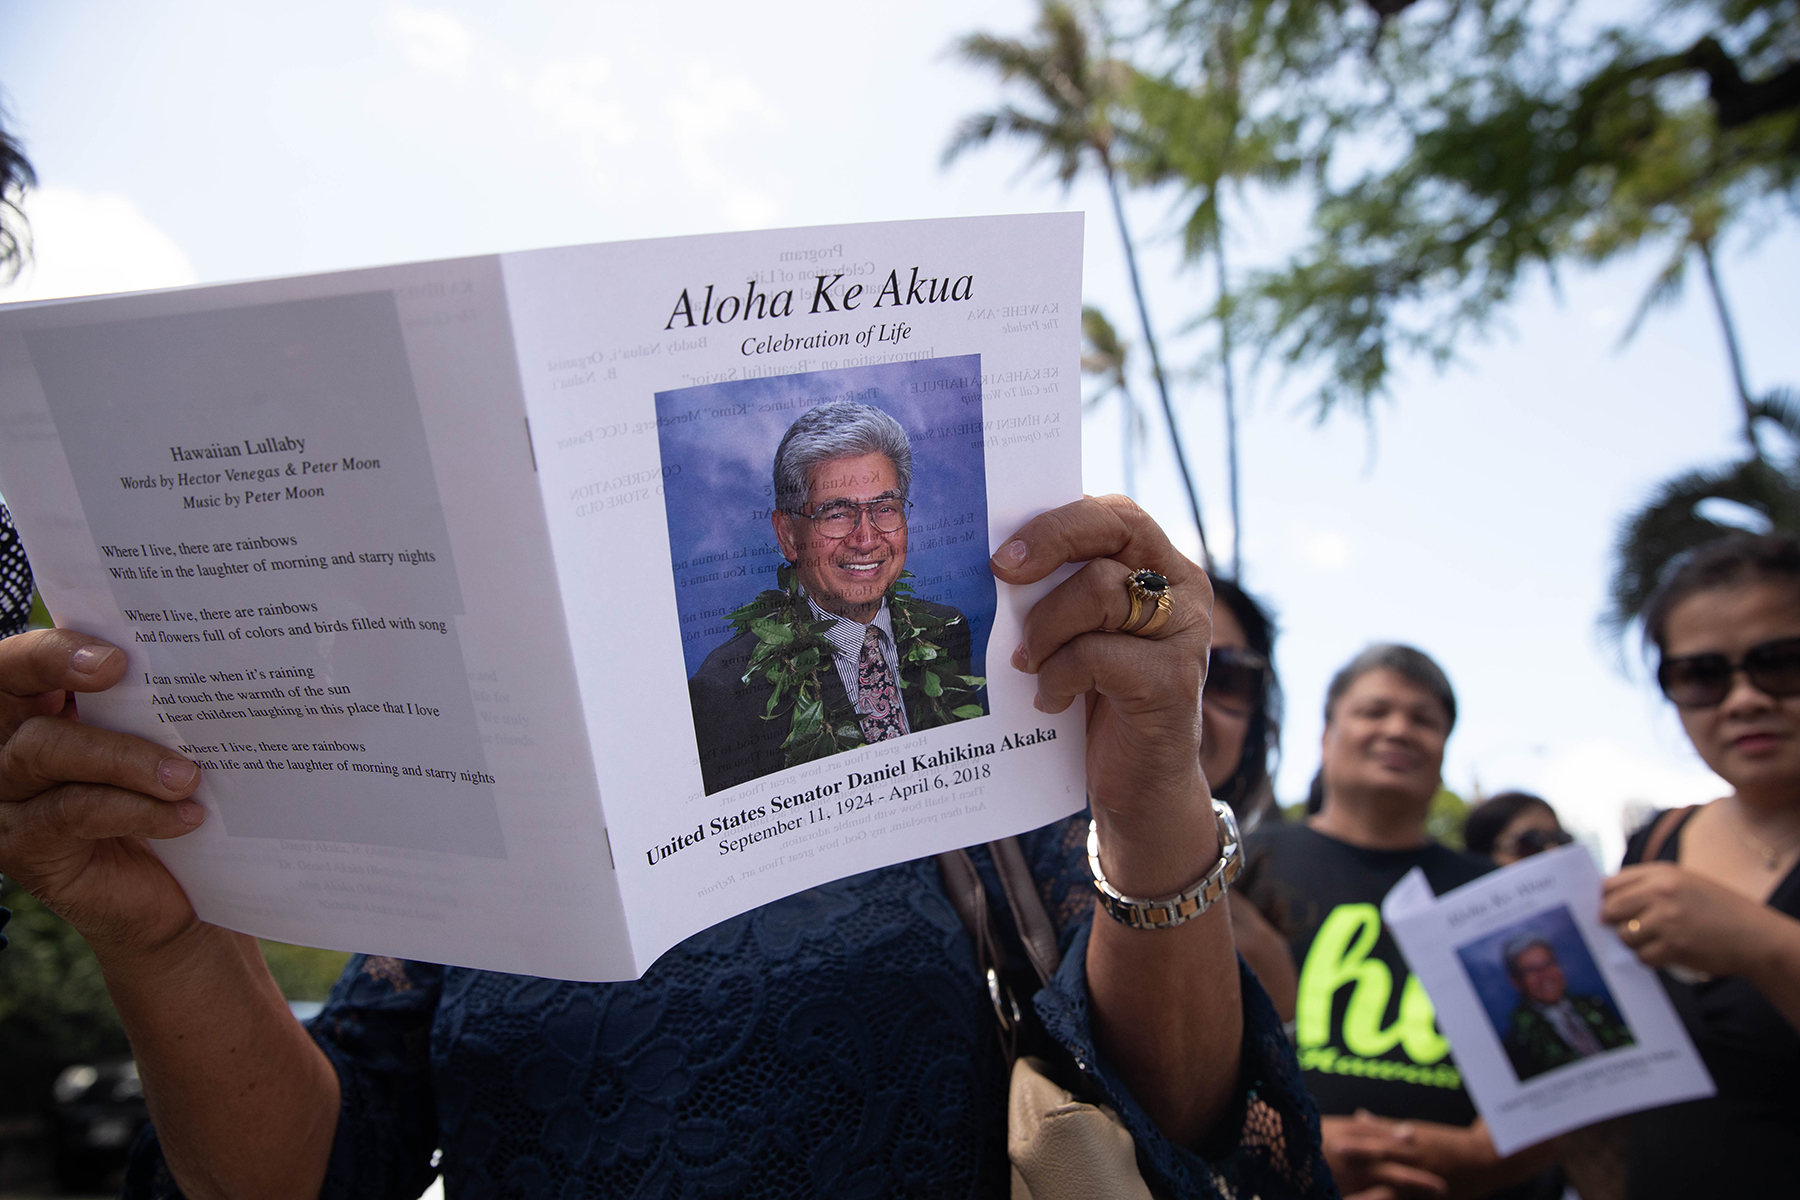 <p><strong>AKAKA'S PASSING:</strong> Nationwide tributes to former Hawaii Sen. Dan Akaka, 93, after his death in April culminated with memorial services in May. The nation's only senator of Native Hawaiian descent served from 1990 to 2013. / Anthony Quintano</p>